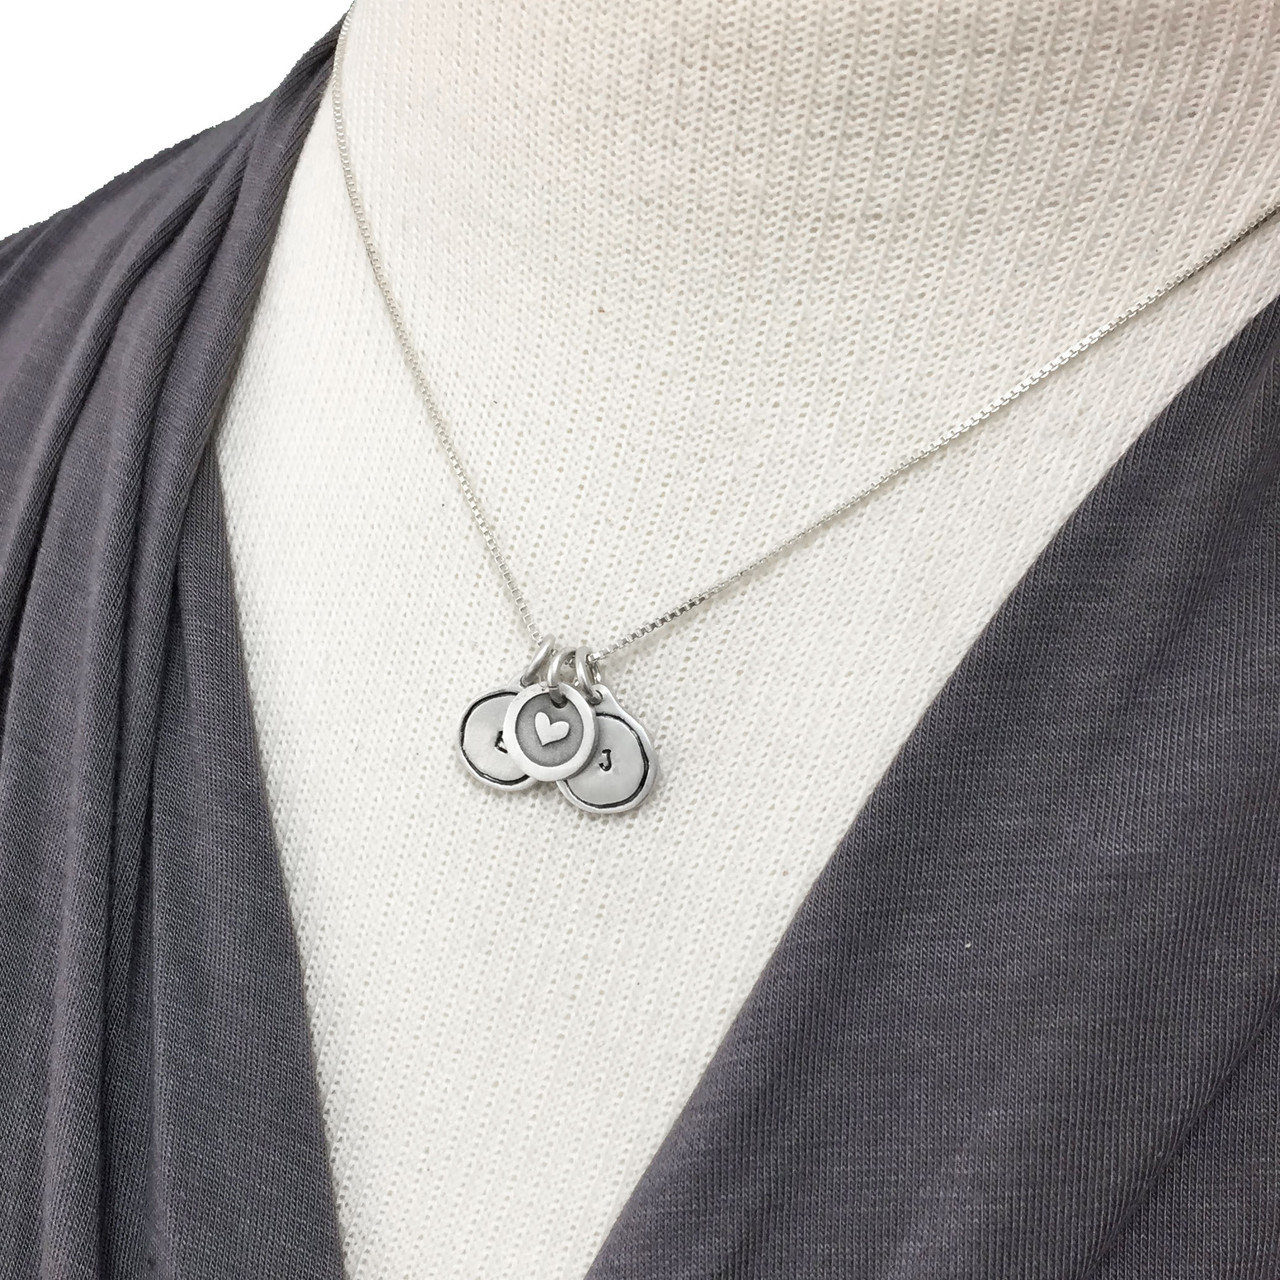 Tiny Framed Initial Silver Charm Necklace on model